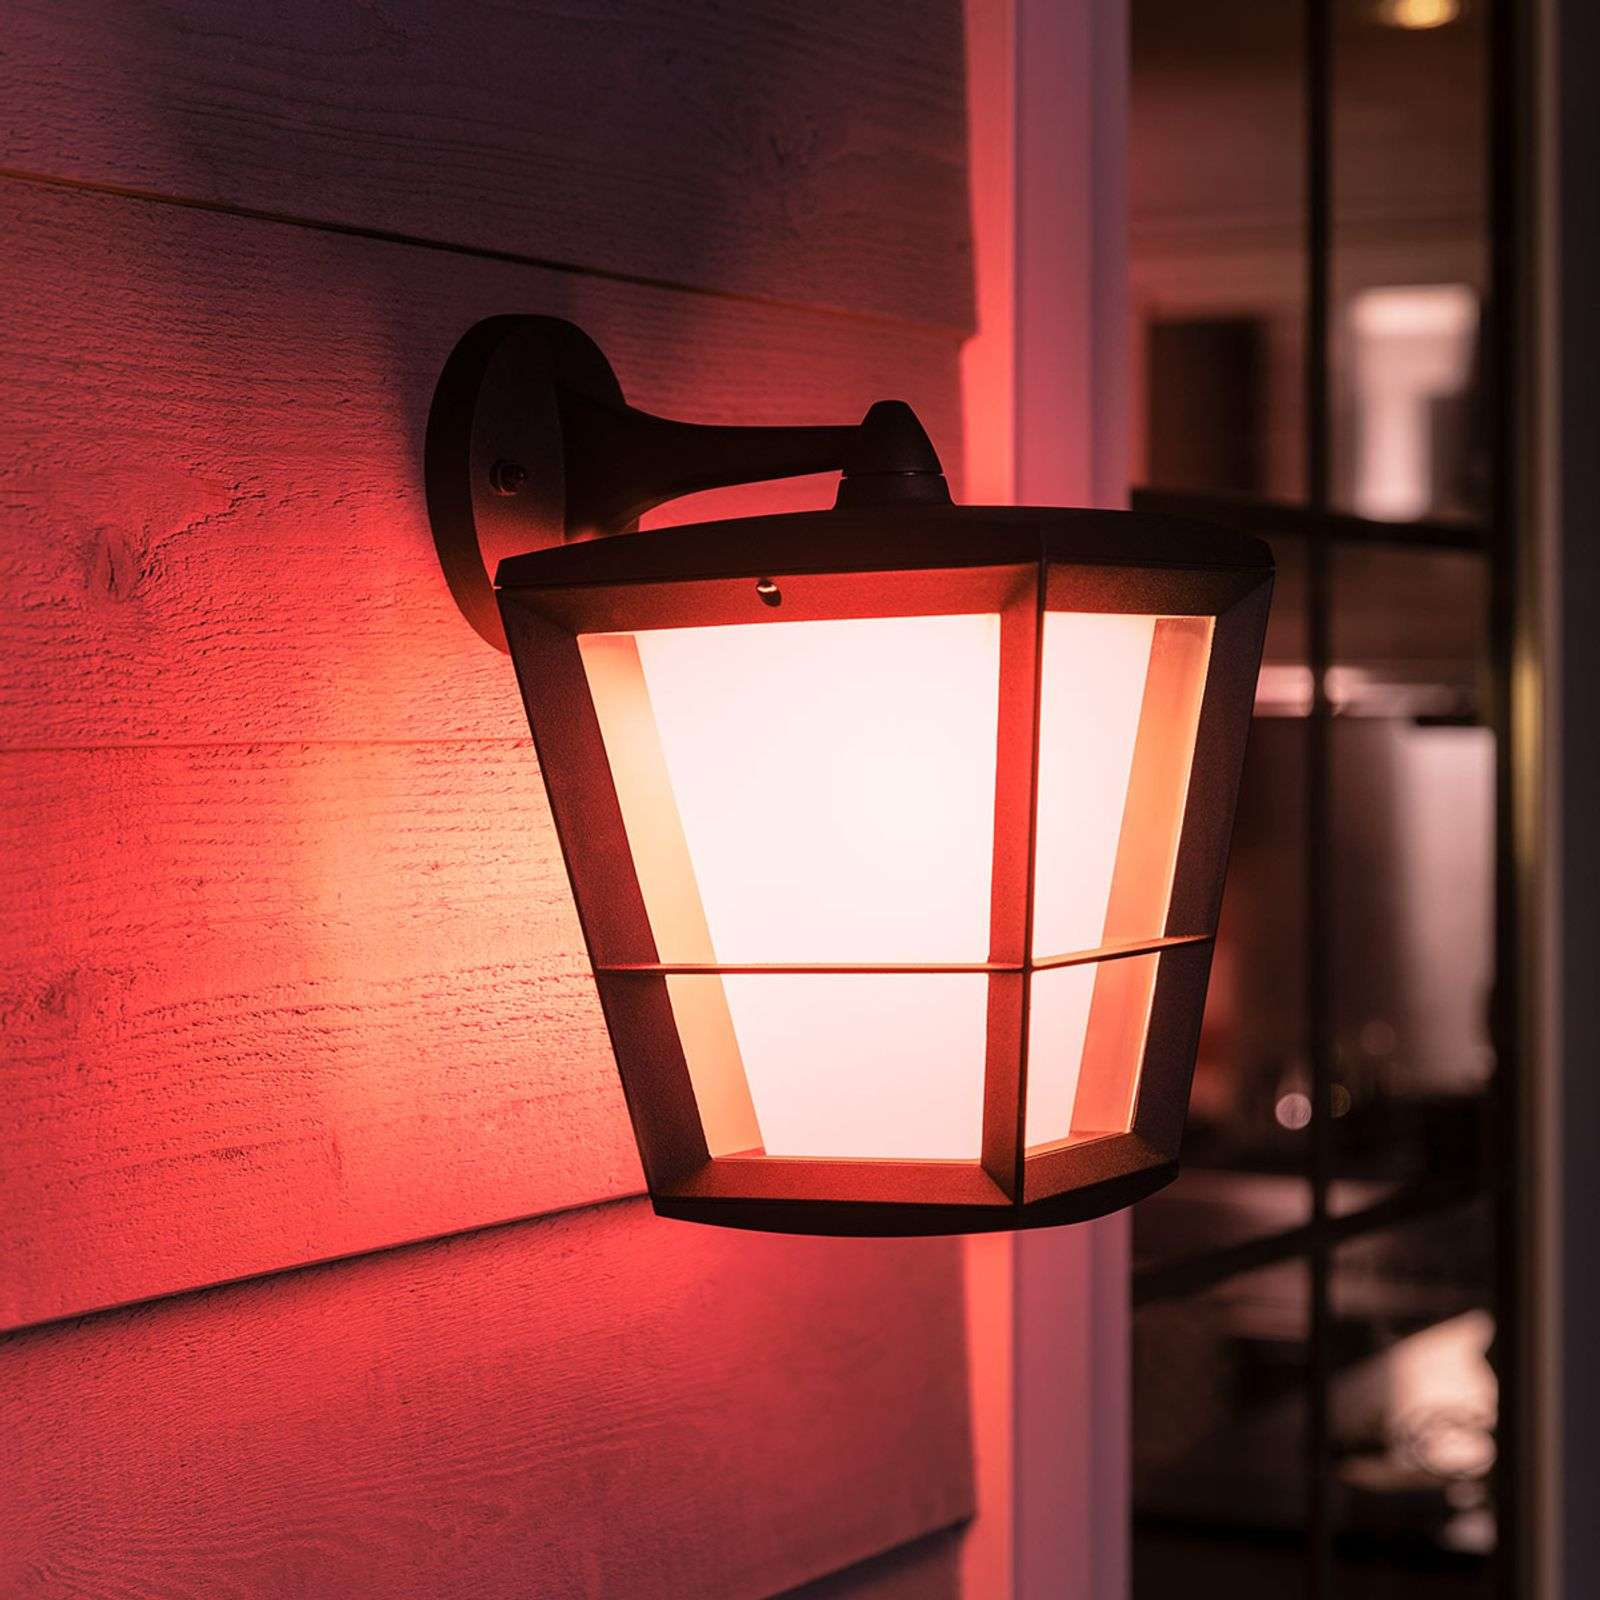 Philips Hue White+Color Econic lampa ścienna, dół-7534118-02